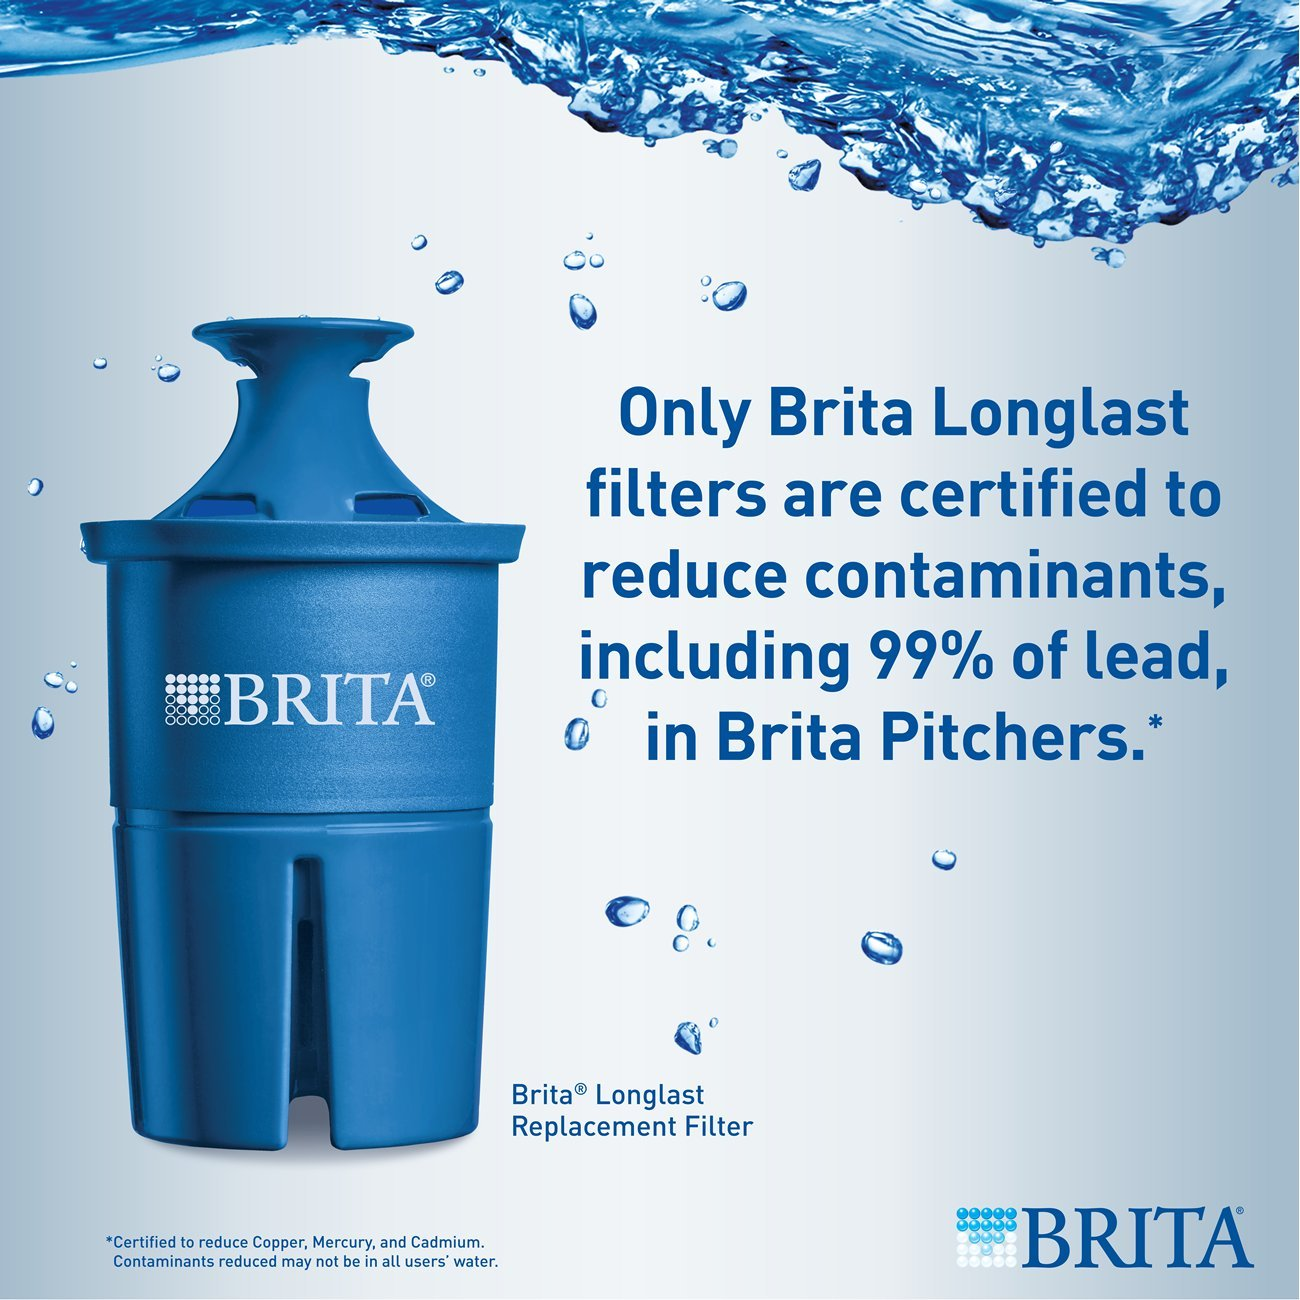 Brita Extra Large 18 Cup Filtered Water Dispenser with 1 Longlast Filter, Reduces Lead, BPA Free – Ultramax, Jet Black by Brita (Image #8)